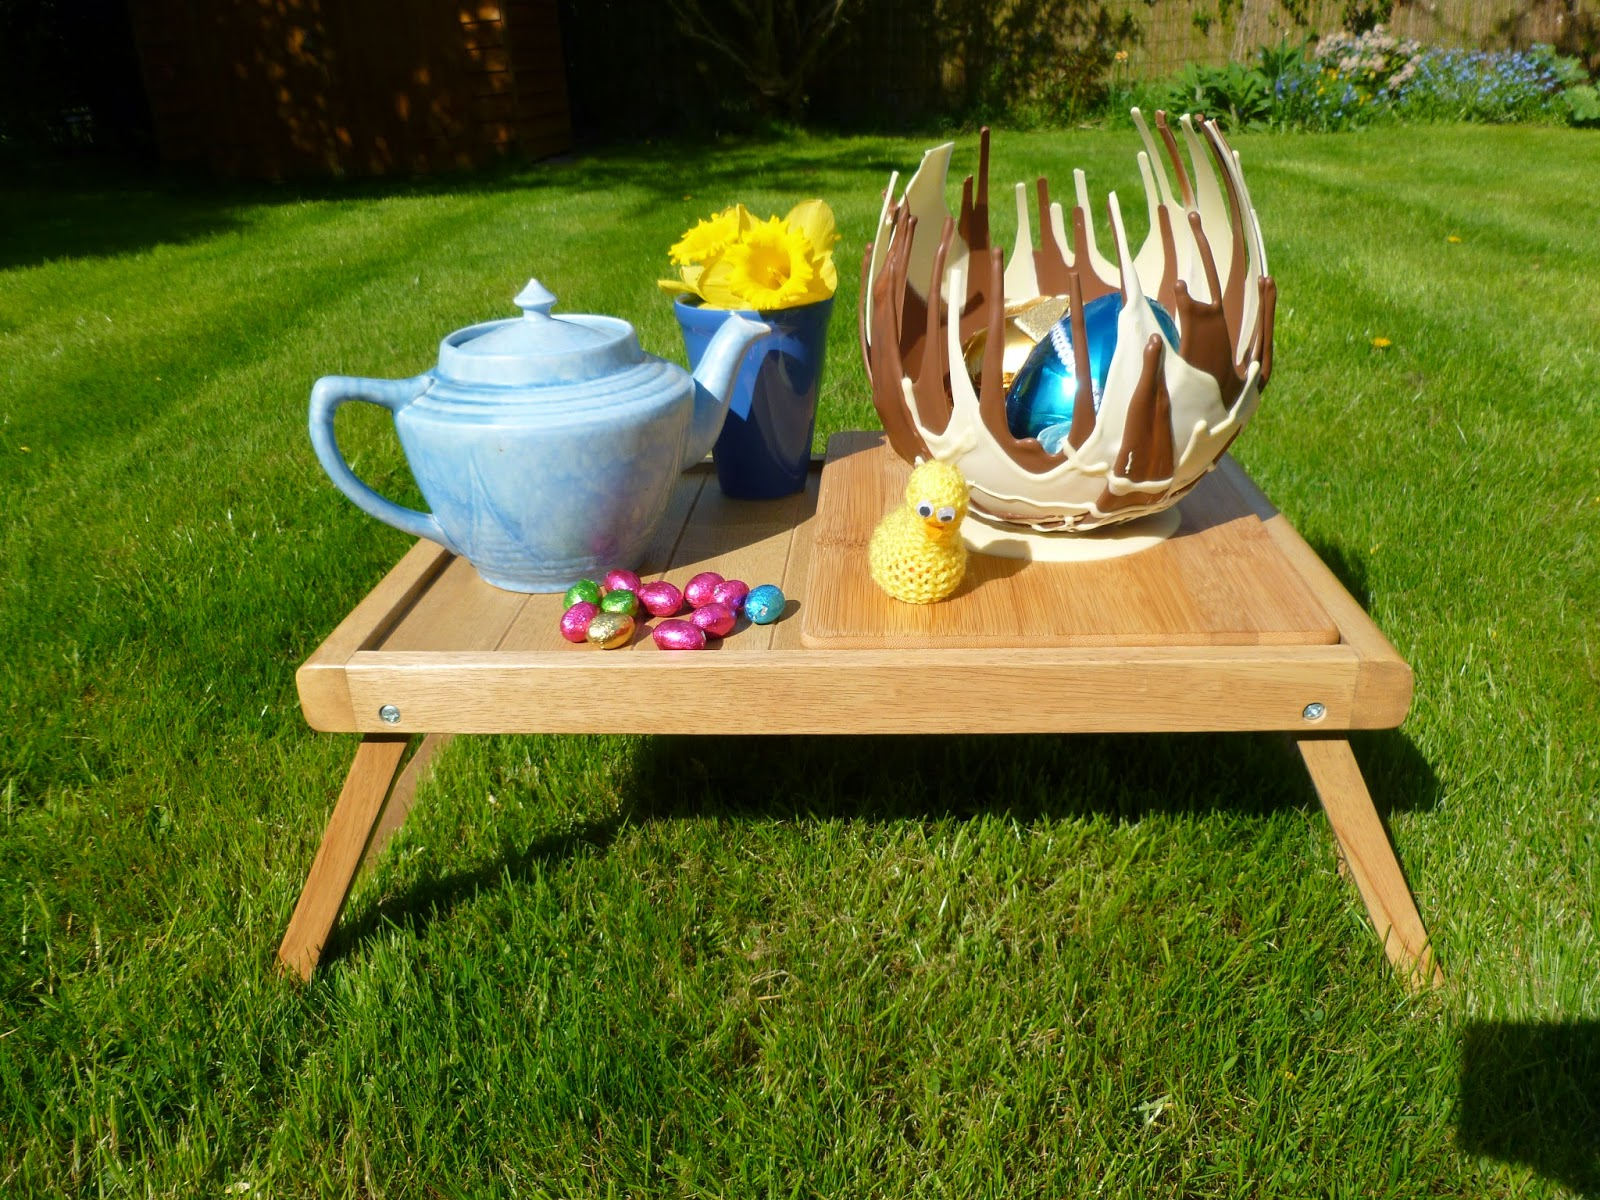 Easter Chocolate Basket & Picnic